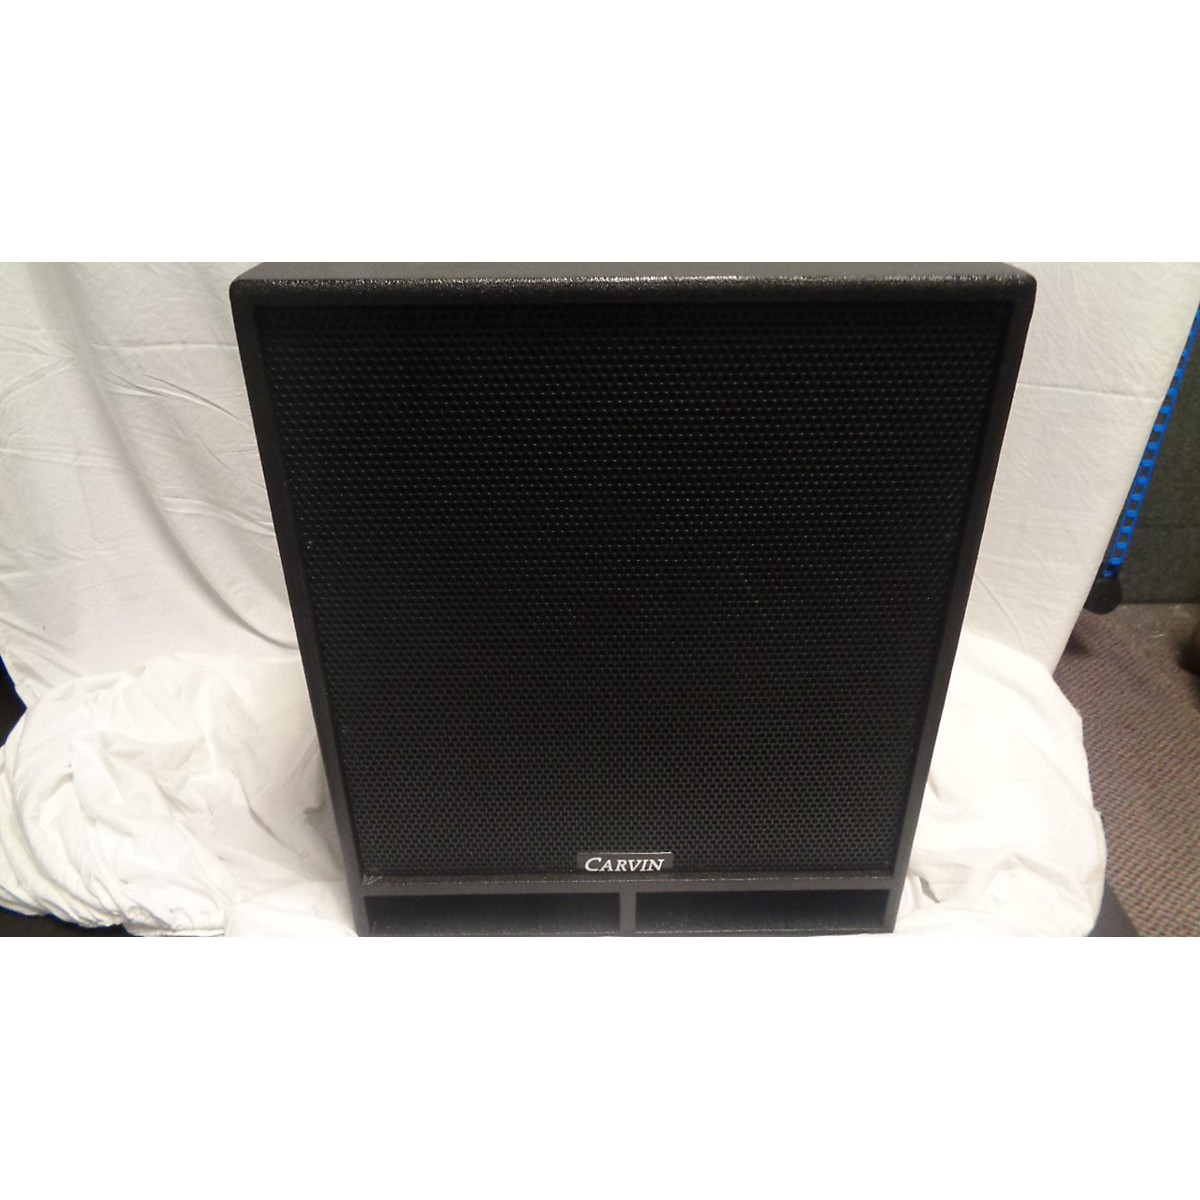 Carvin SCX18A Powered Subwoofer